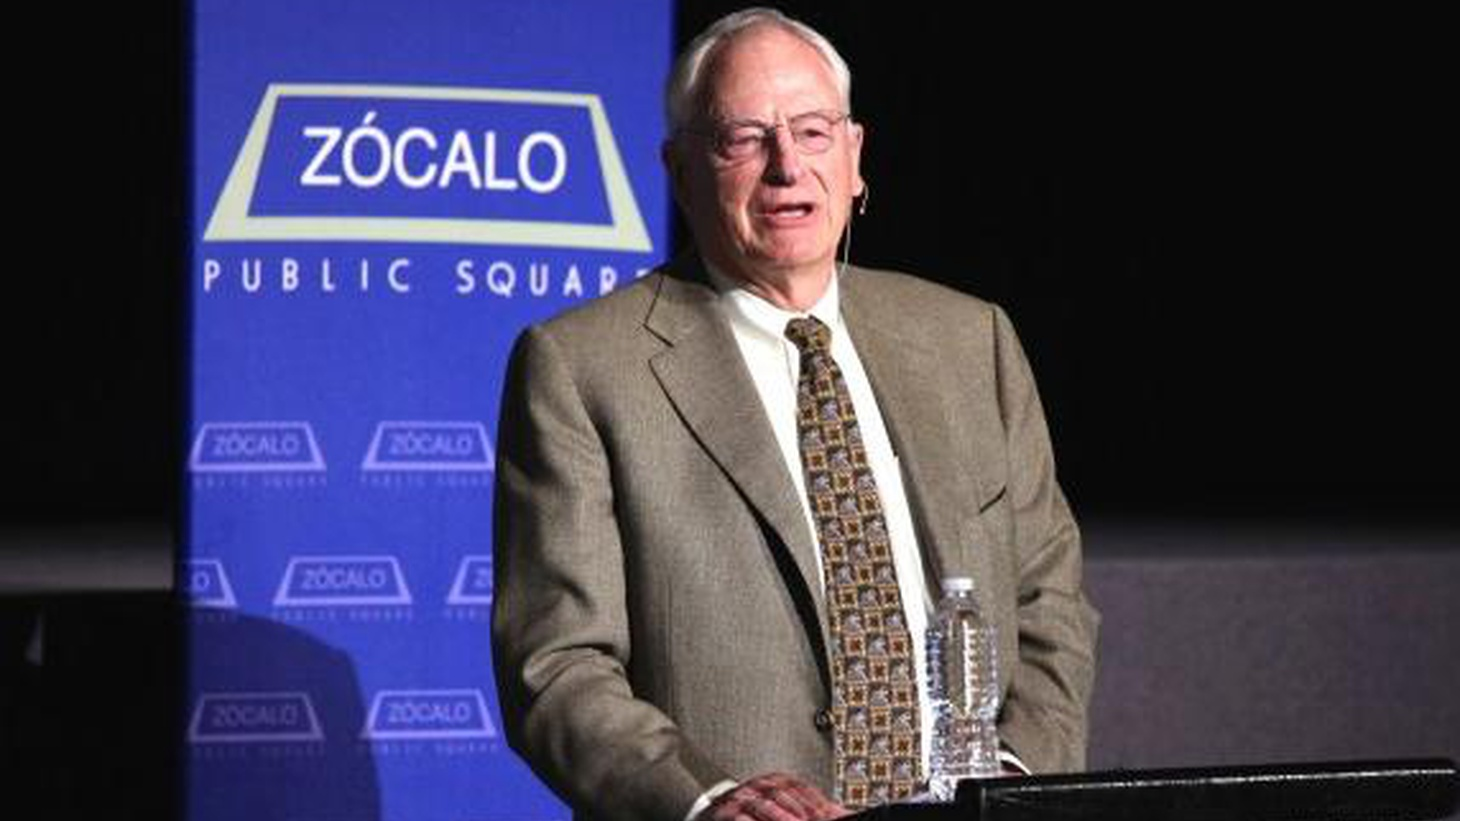 Former Kaiser Foundation CEO, David Lawrence spoke to a live audience on September 15, 2011, as part of Zócalo's ongoing series on healthcare.